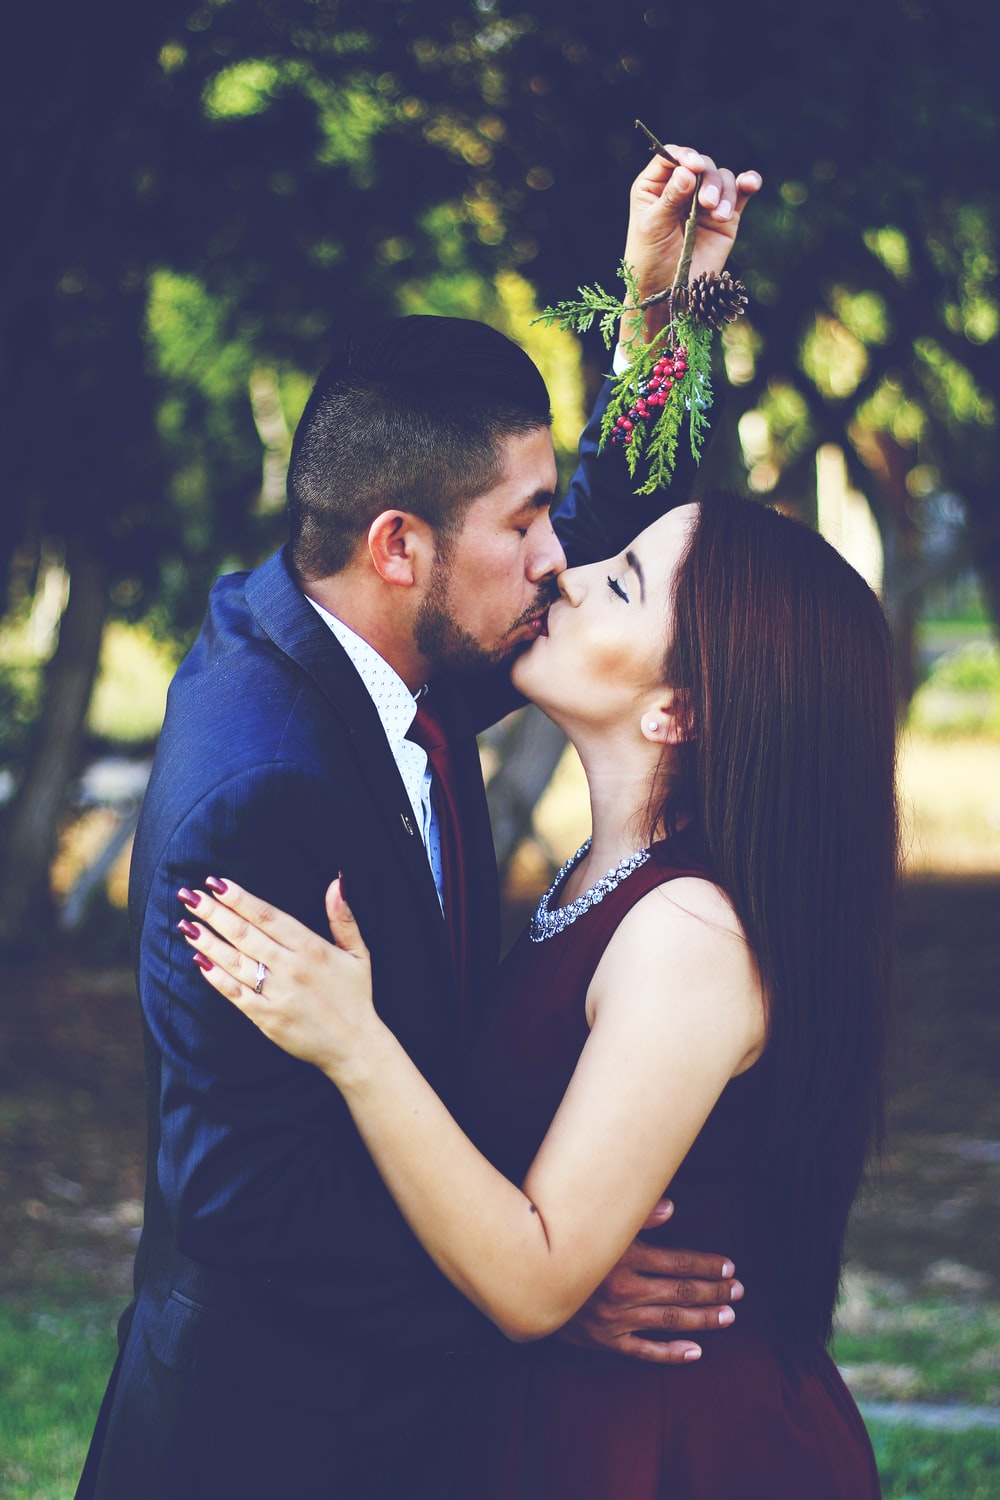 man and woman kissing near trees